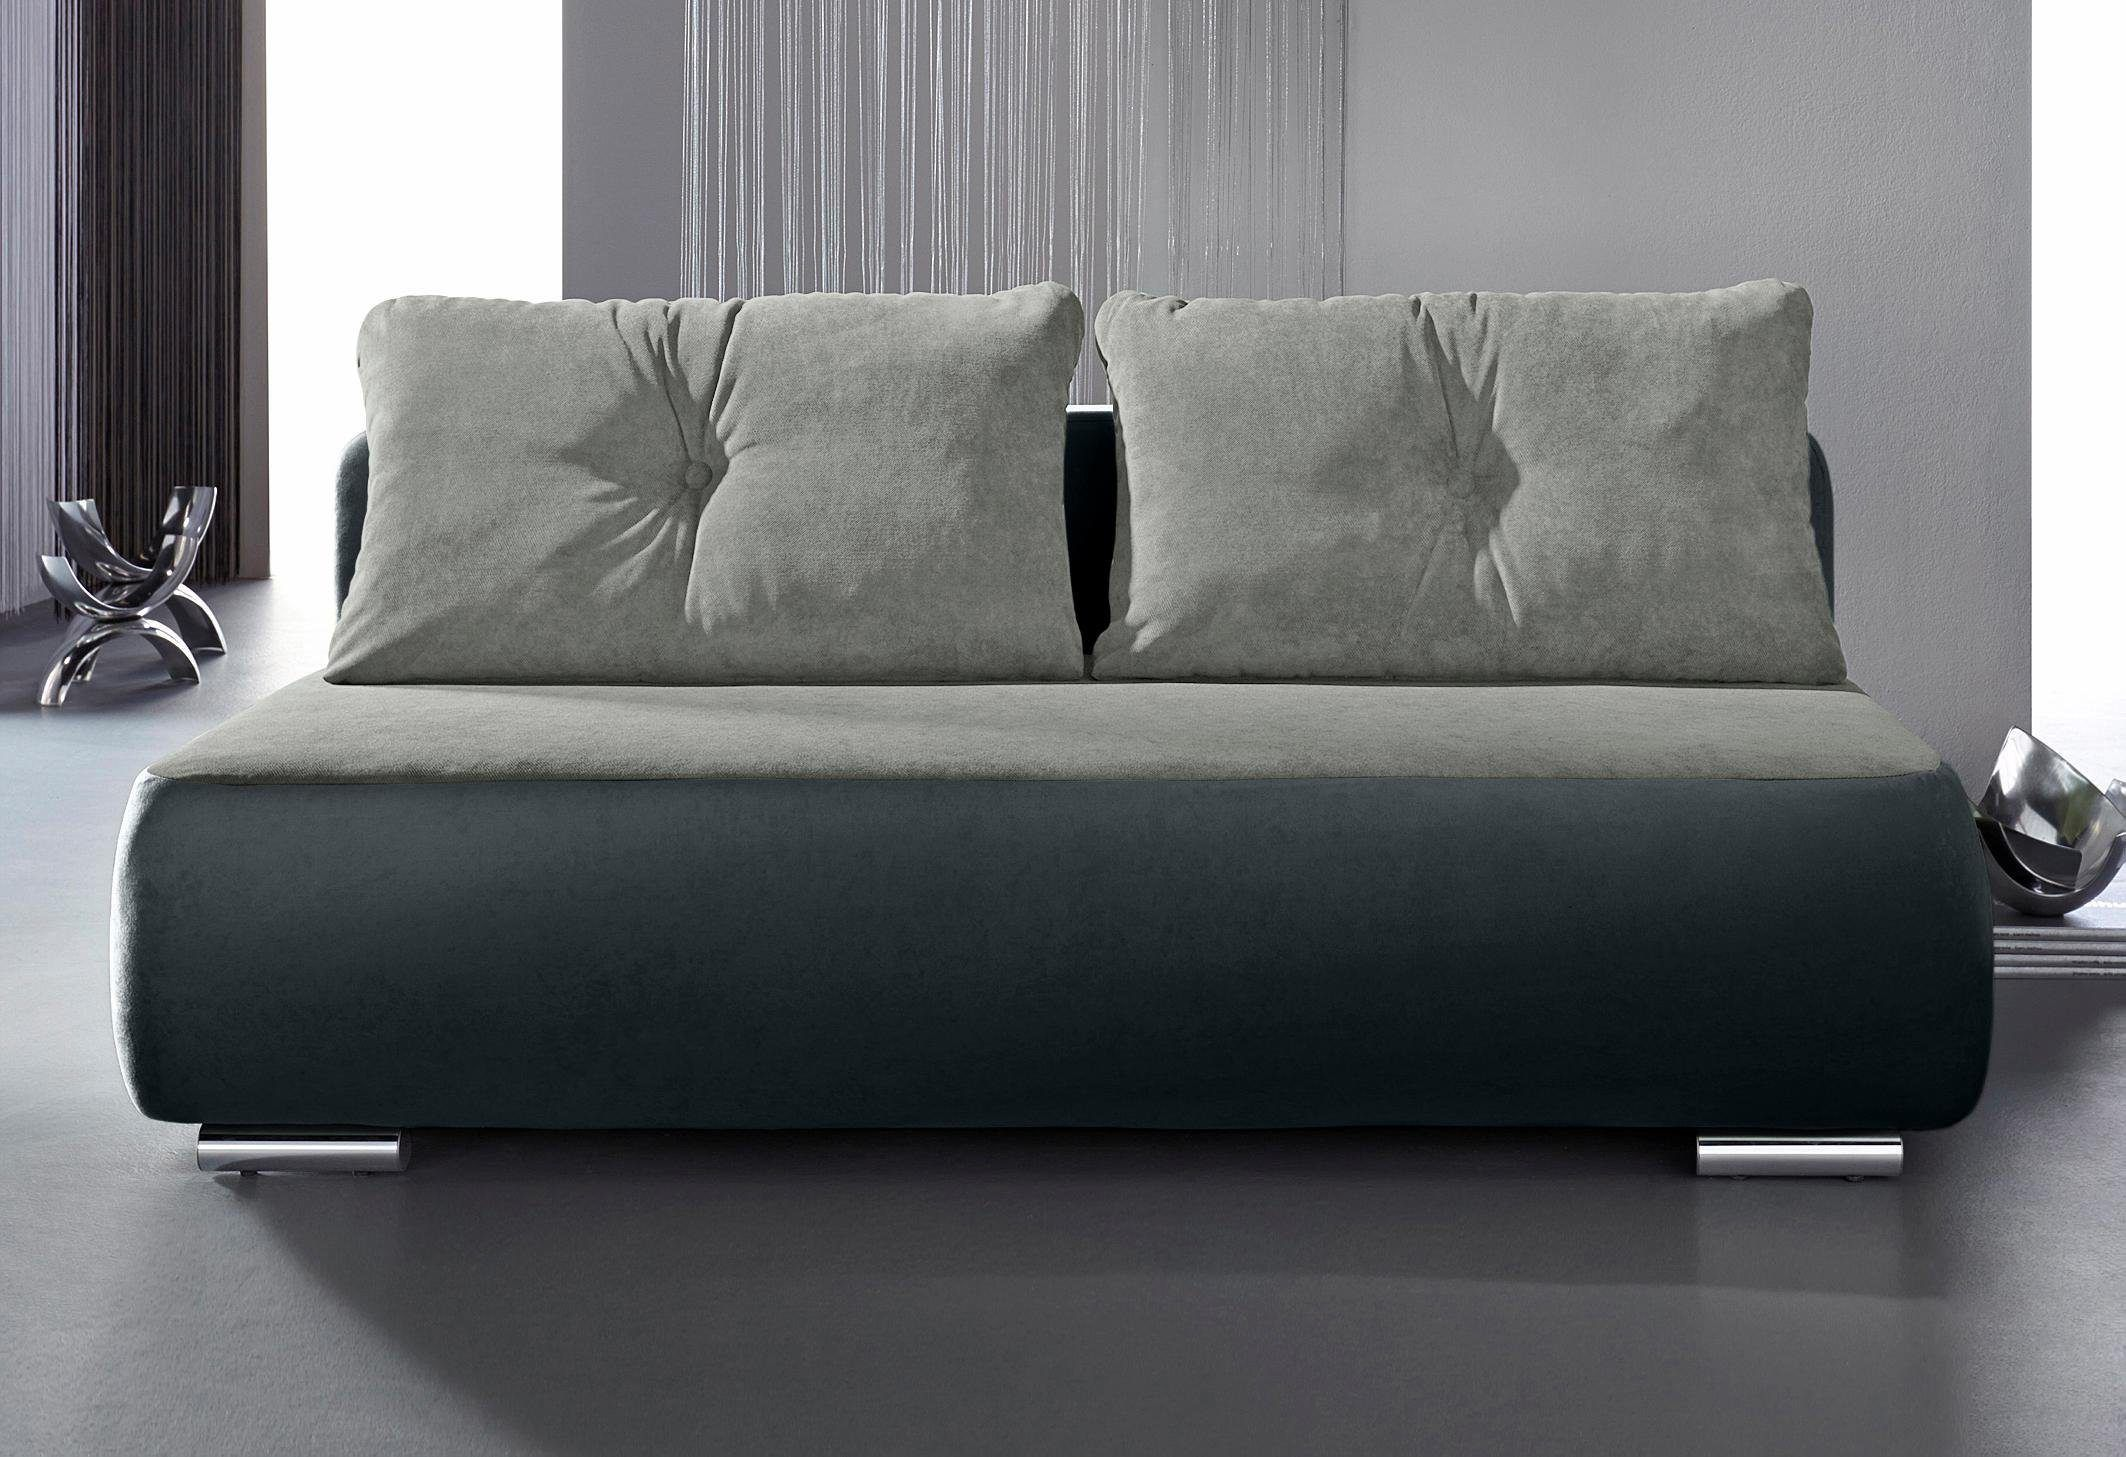 Inosign Schlafsofa Interior Design Furniture Furniture Couch